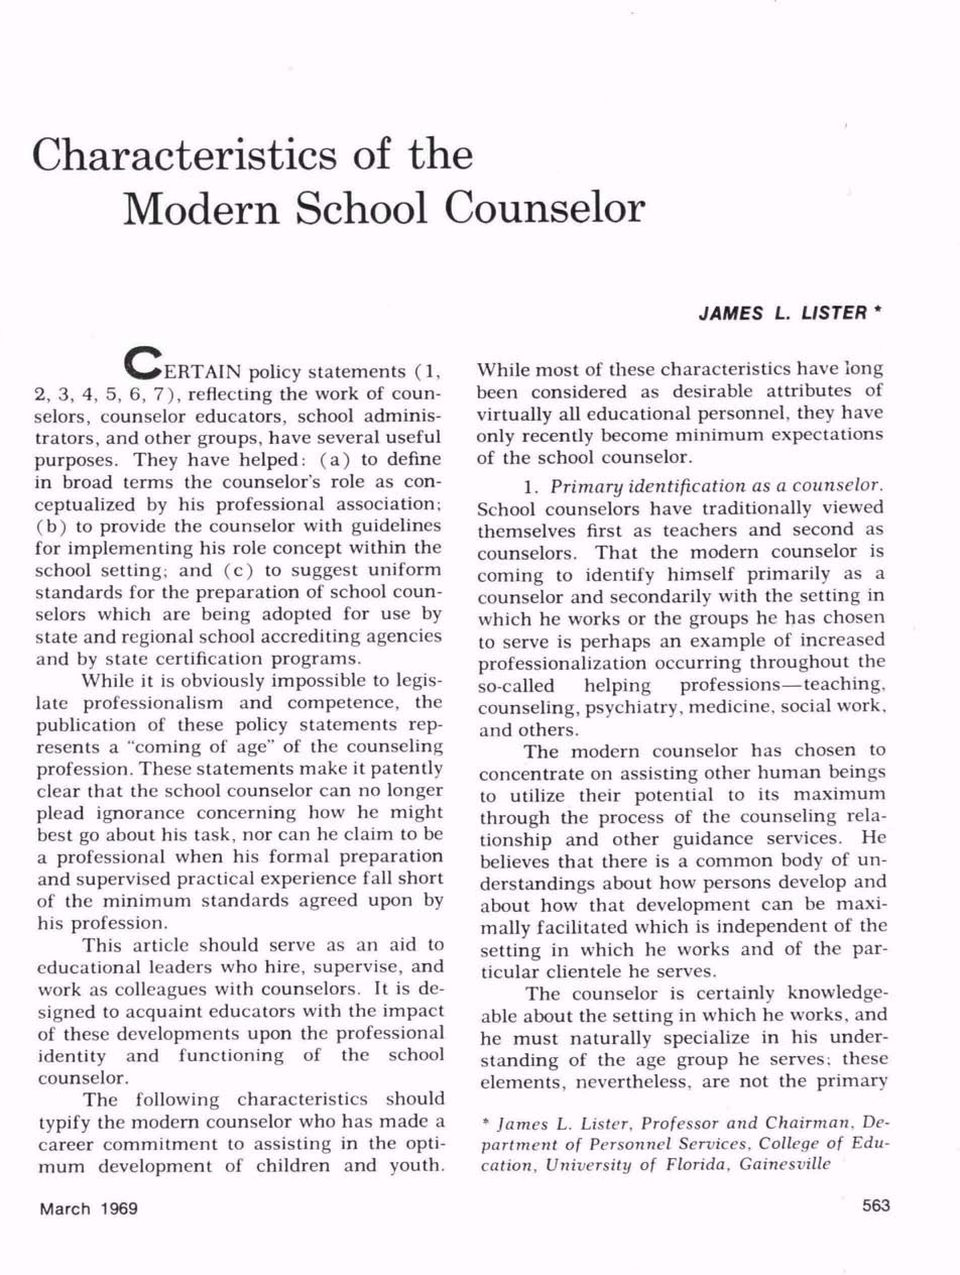 They have helped: (a) to define in broad terms the counselor's role as con ceptualized by his professional association; (b) to provide the counselor with guidelines for implementing his role concept